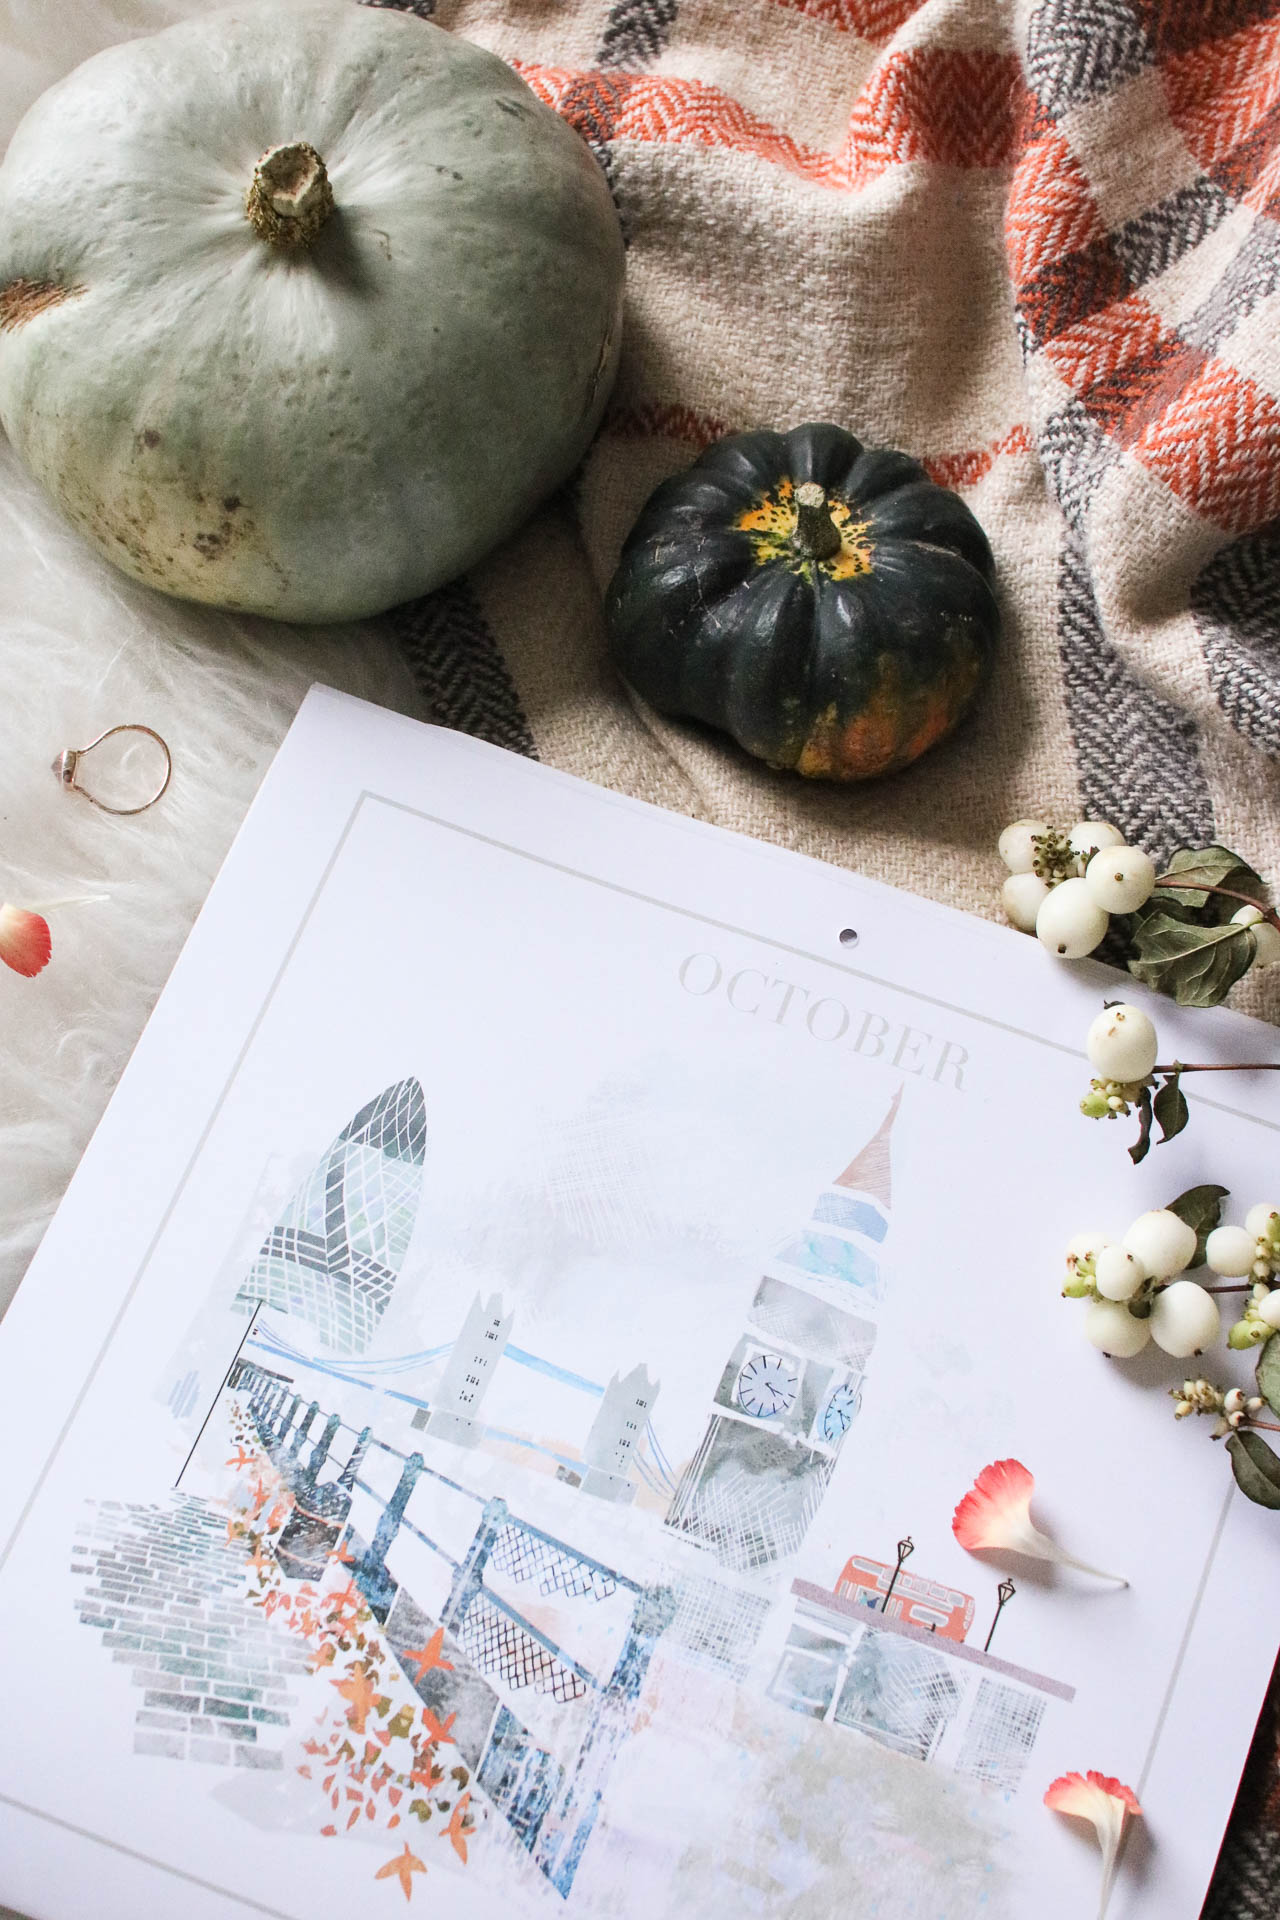 October goals - my plans and aims for this month